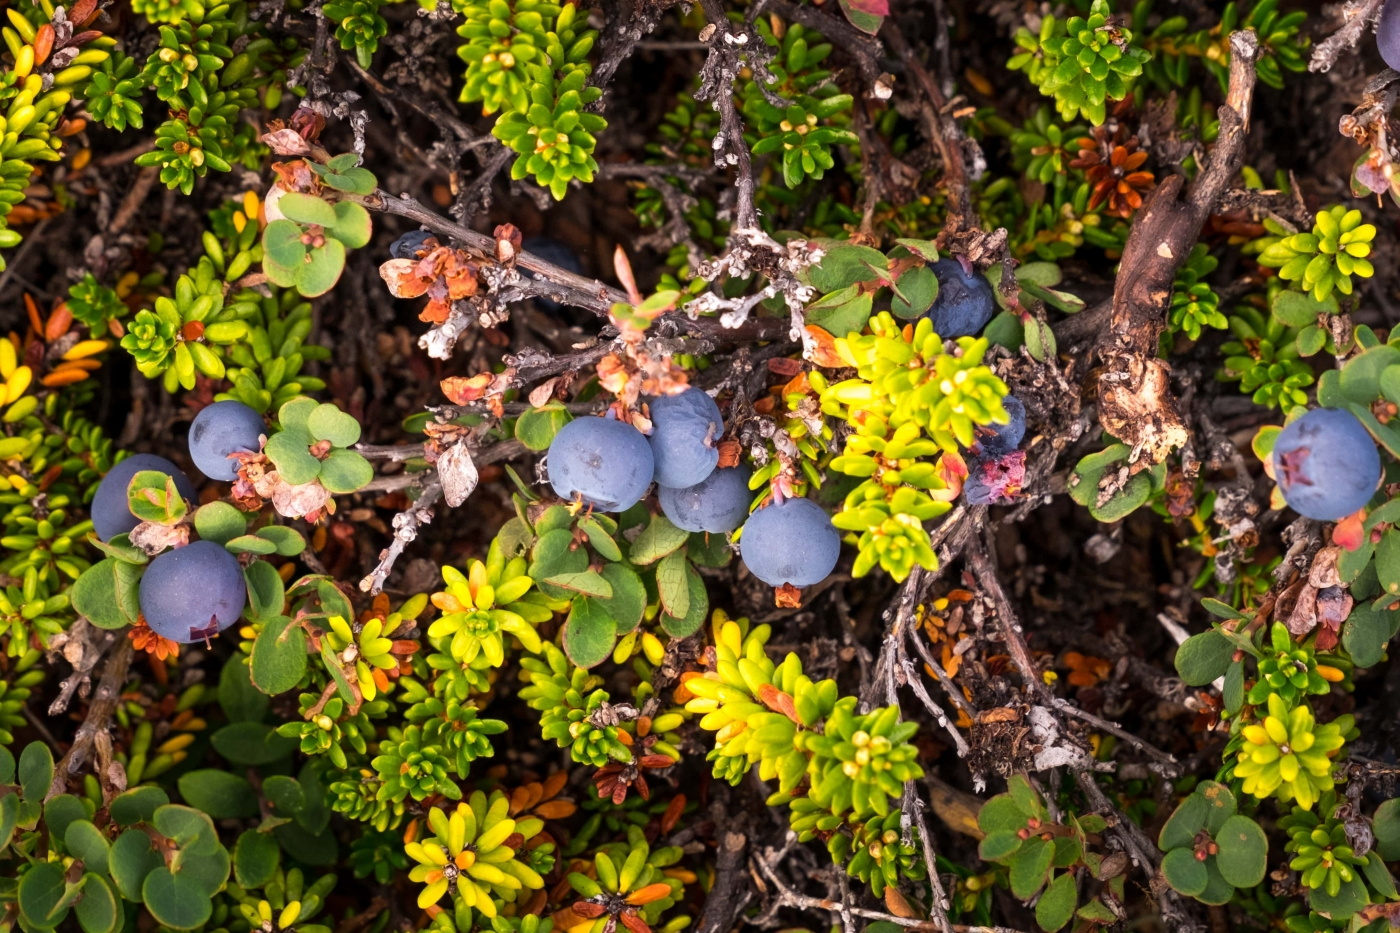 Greenland Flora - Bog Bilberry - Arctic Blueberry on Arctic Circle Trail. Photo by Lisa Germany.